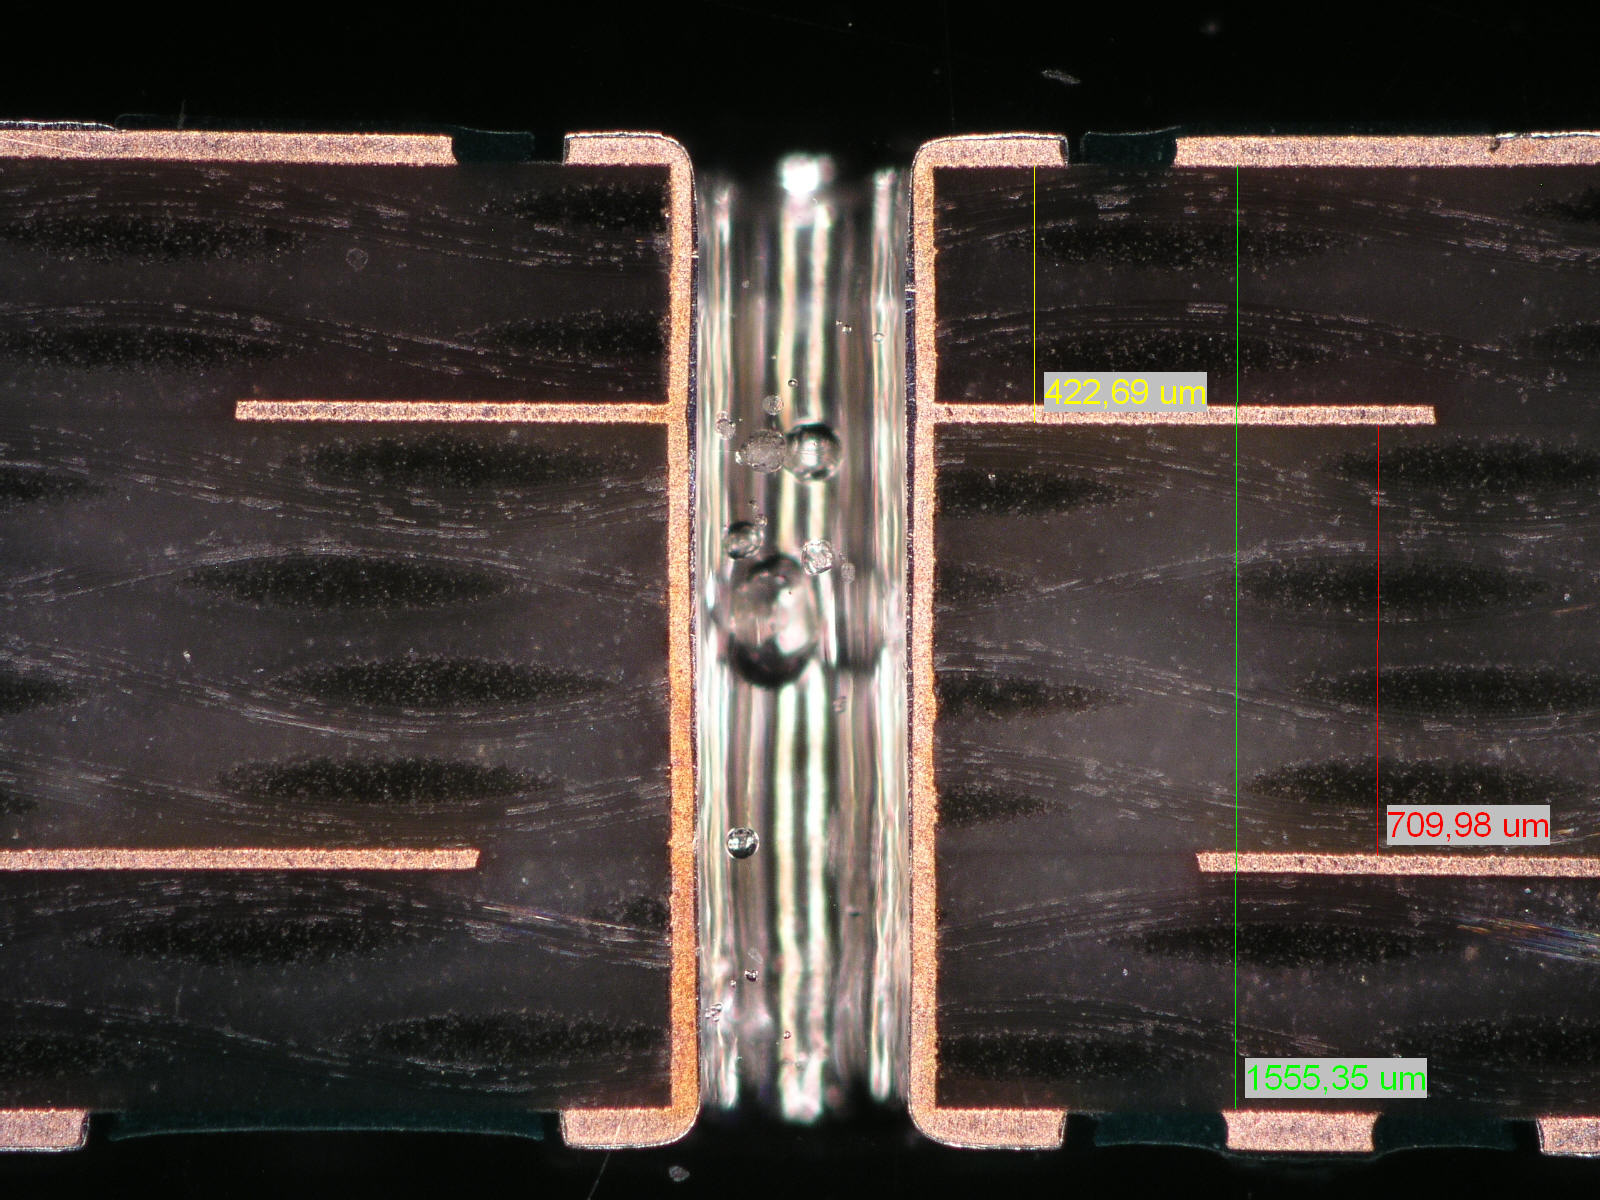 How Do We Assure The Quality Of Your Pcb Part 3 Eurocircuits Fr4 Material Electronic Calculator Circuit Board With Inspect Registration Inner Copper Lands To Holes Next Picture Shows Same As Last One But When Measure